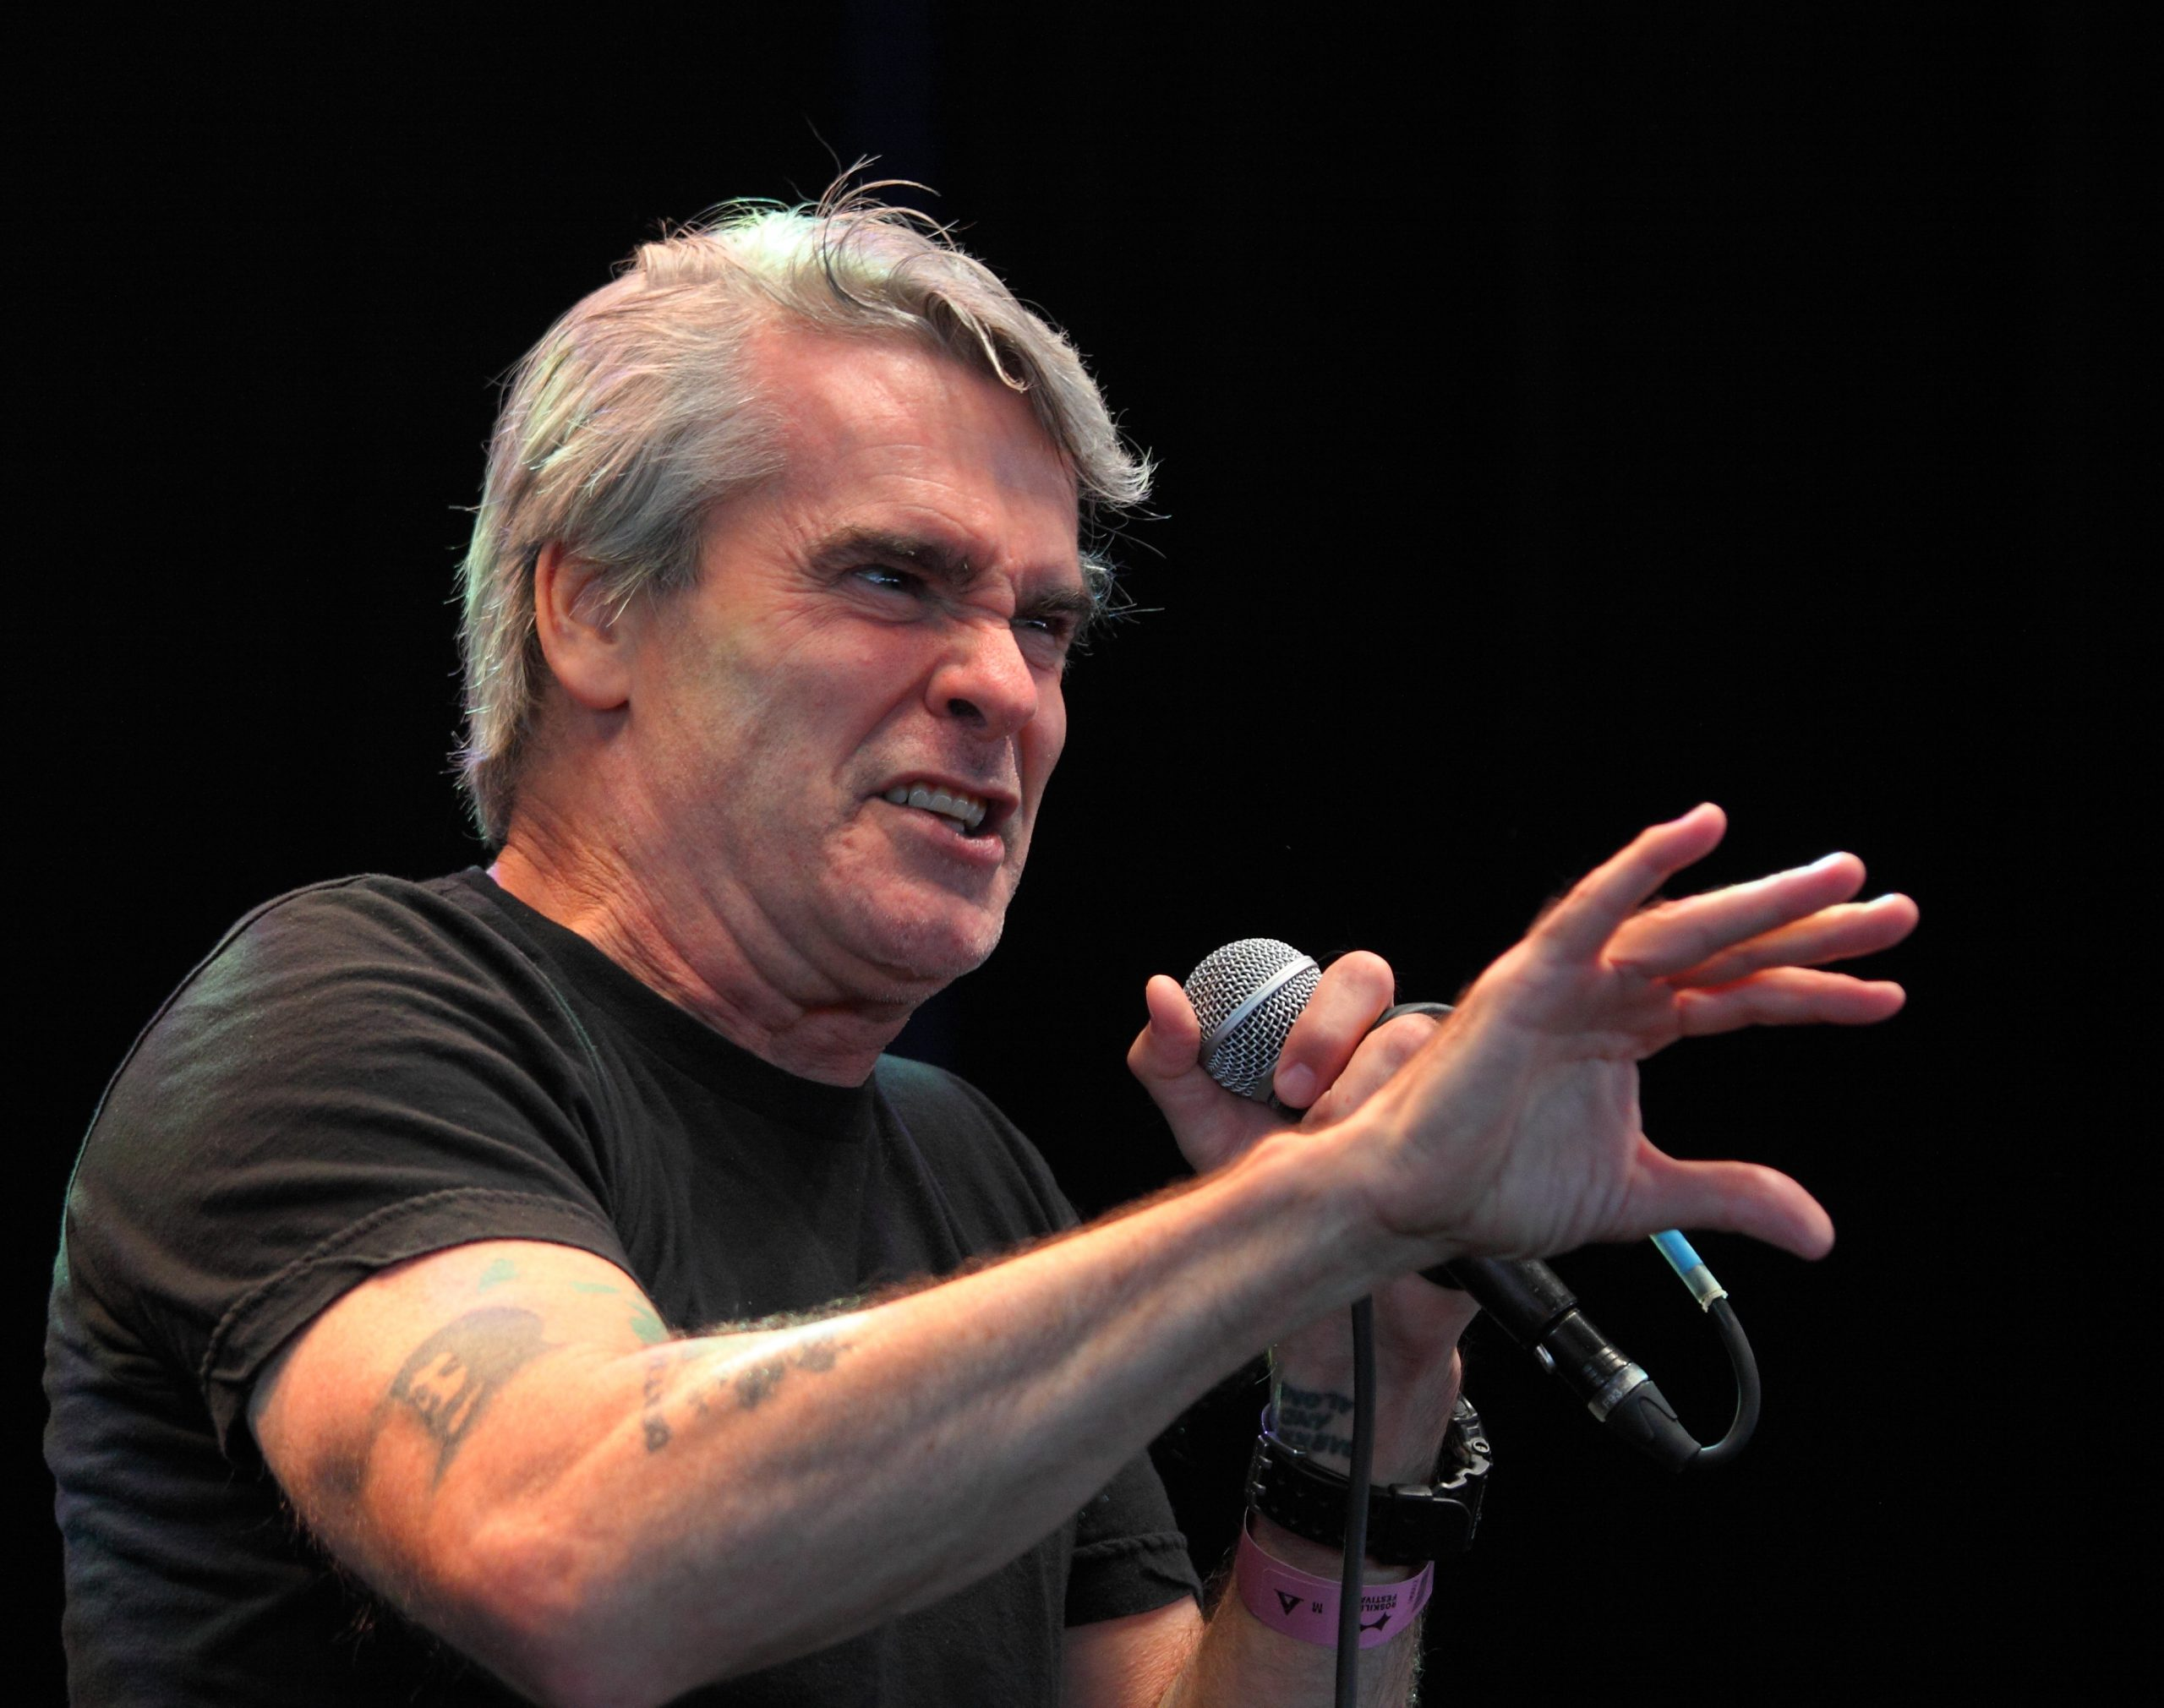 Henry Rollins at Roskilde Festival 2013 scaled 20 Things You Didn't Know About The 1995 Film Heat